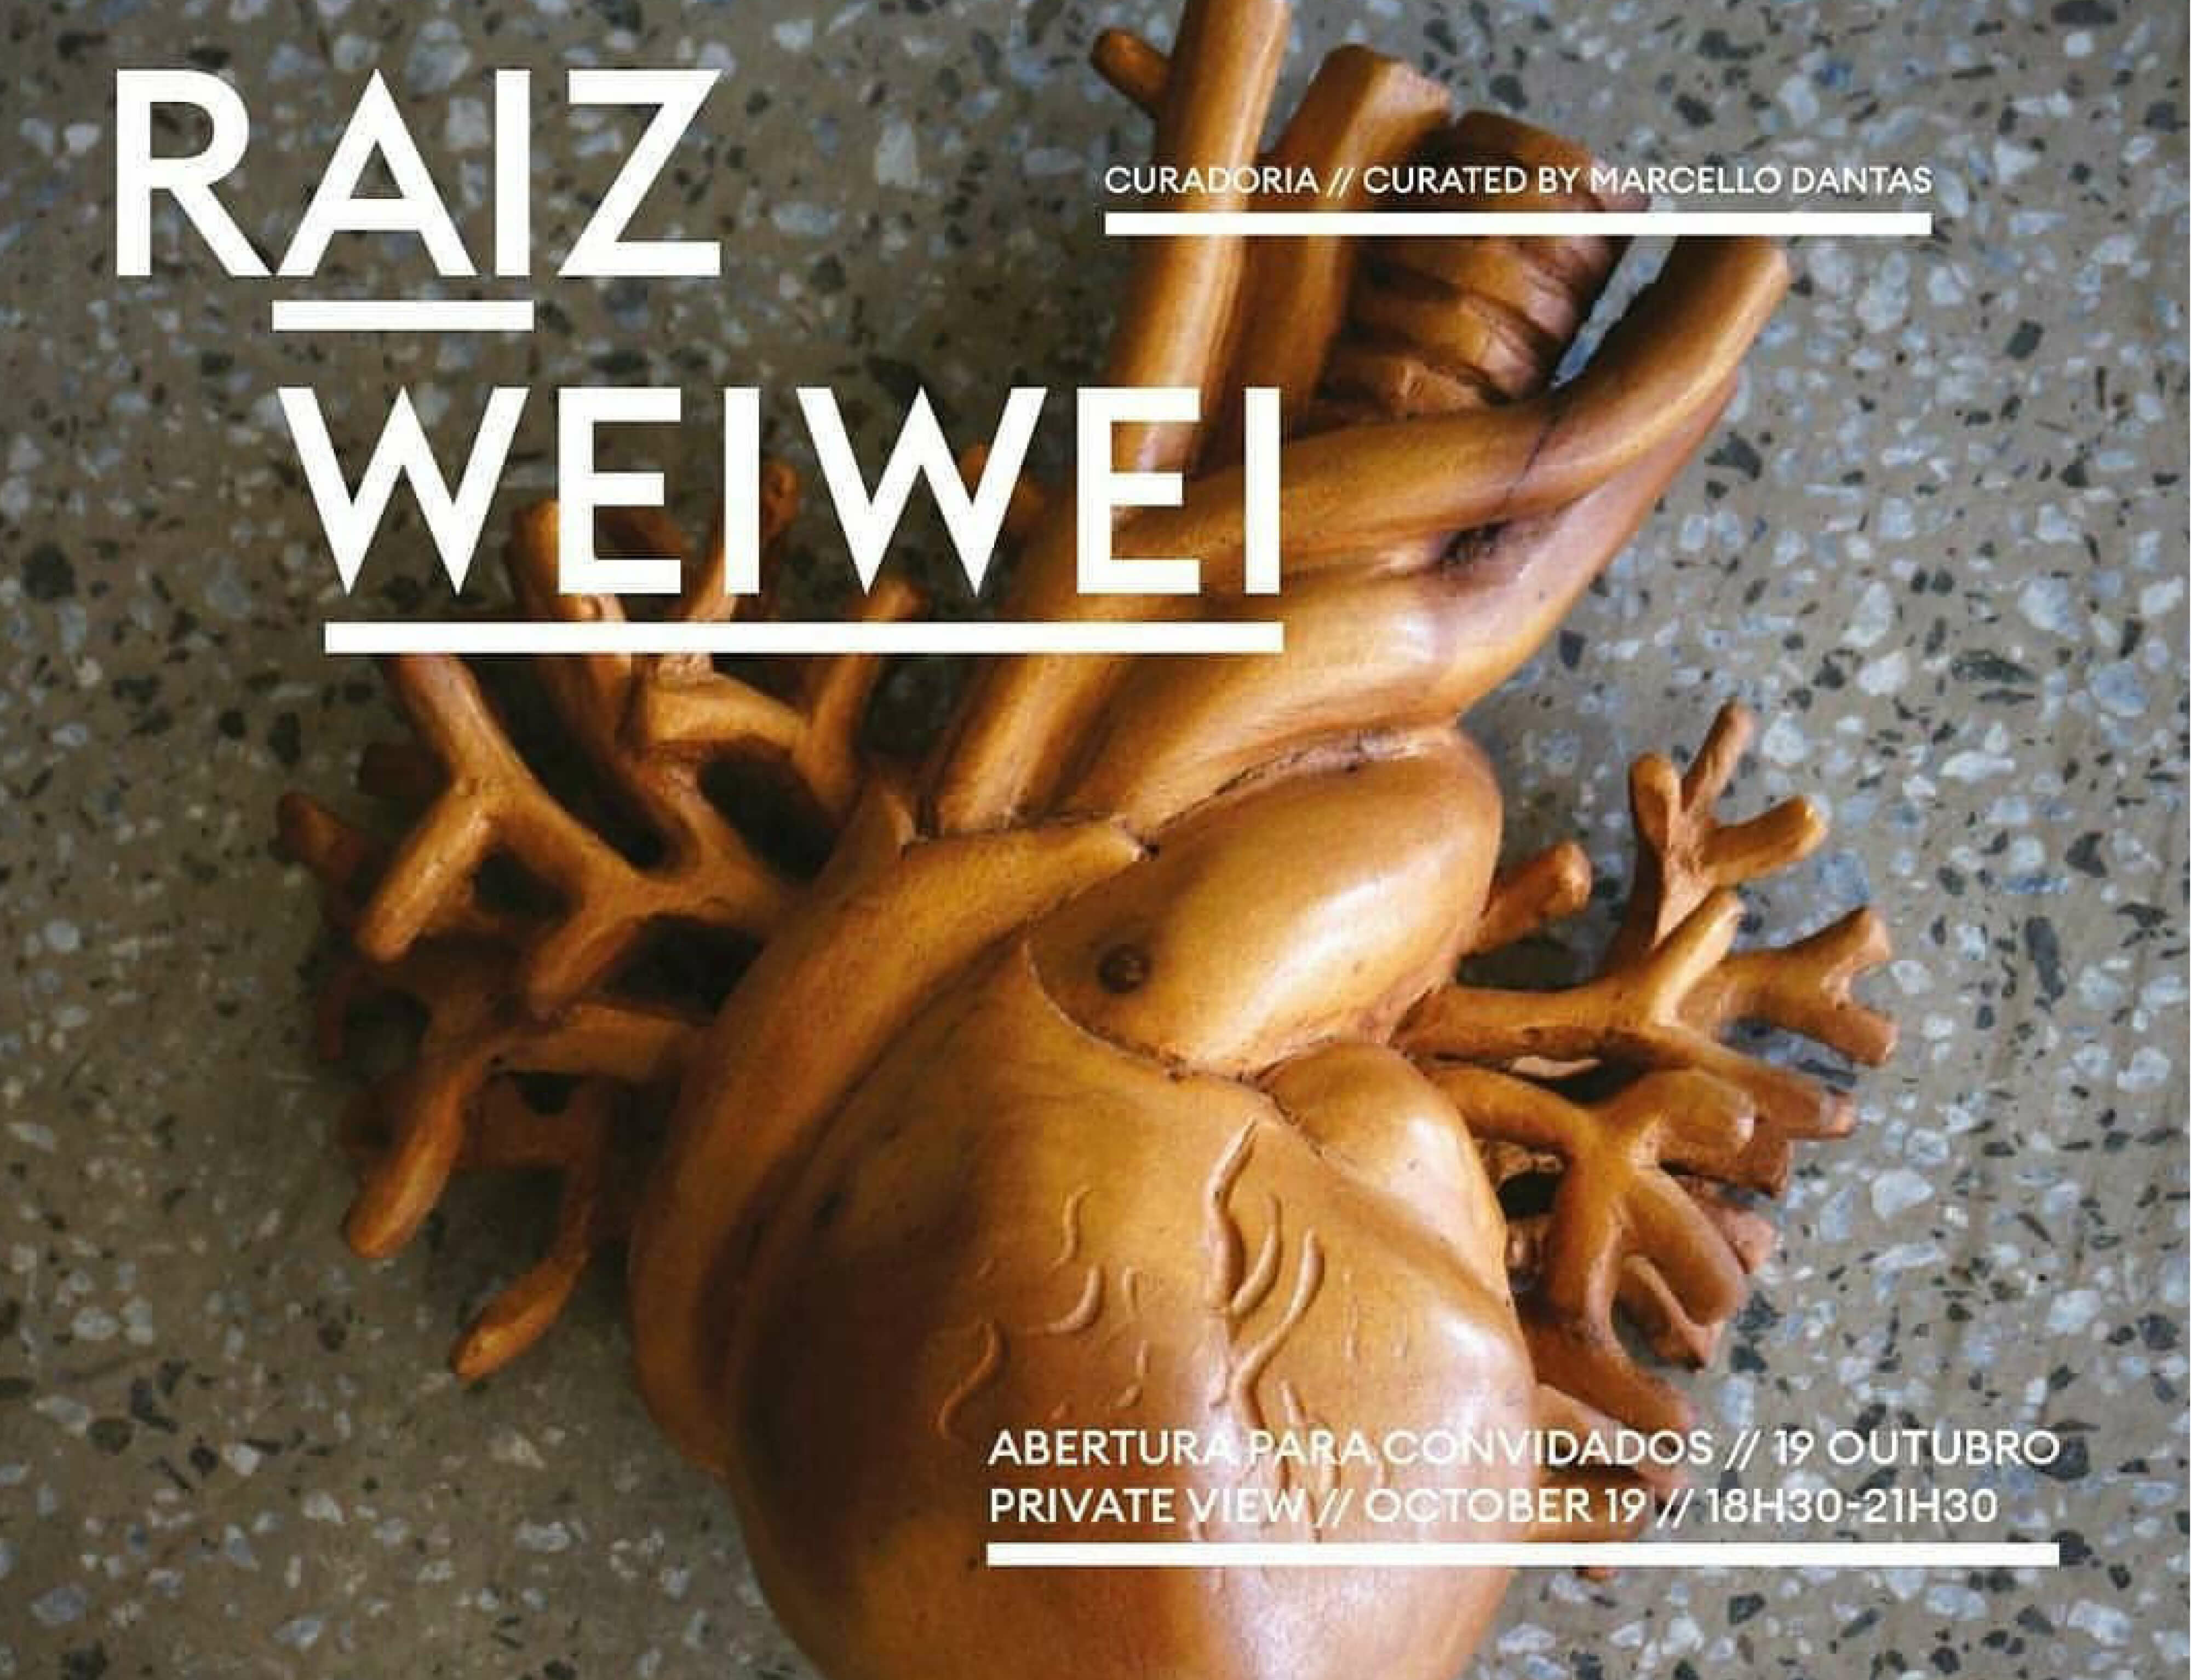 Largest ever exhibition of works by Ai Weiwei opens in São Paulo